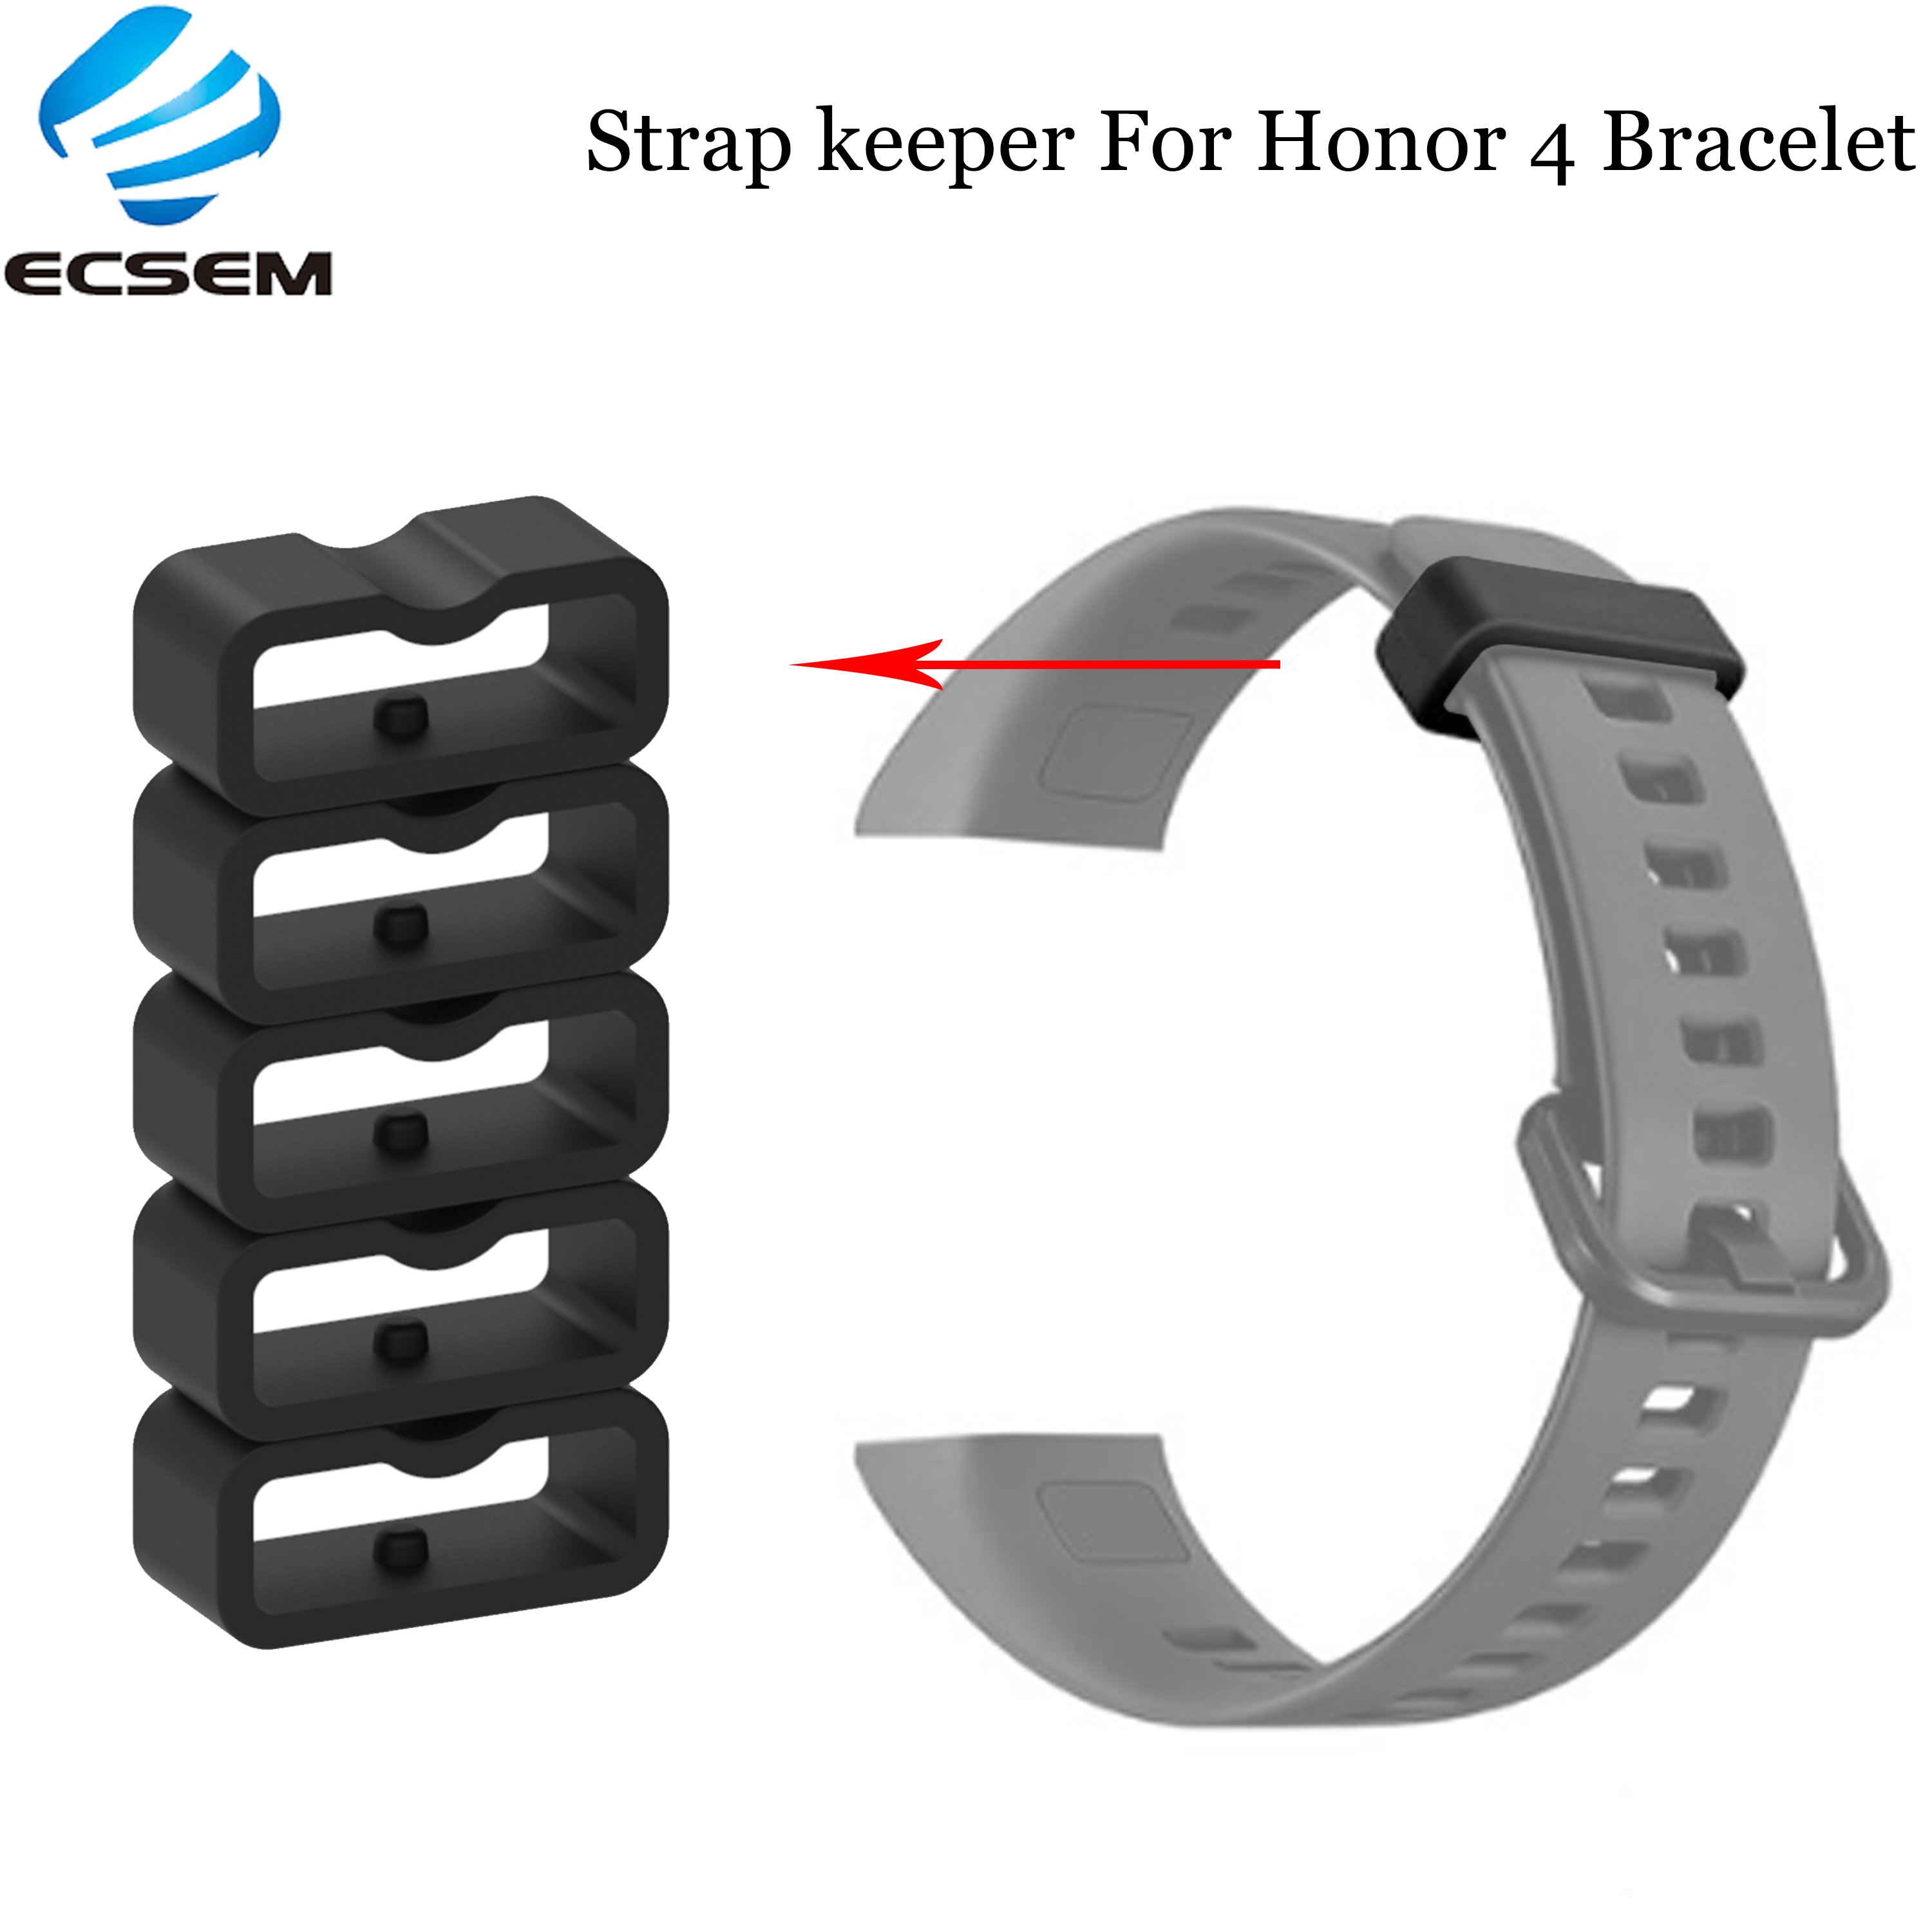 Ecsem 16mm Strap Keeper For Honor 4 Band Silicone Loop Replacement Watch Band Retaining Hoop Rubber Retainer Security Holder